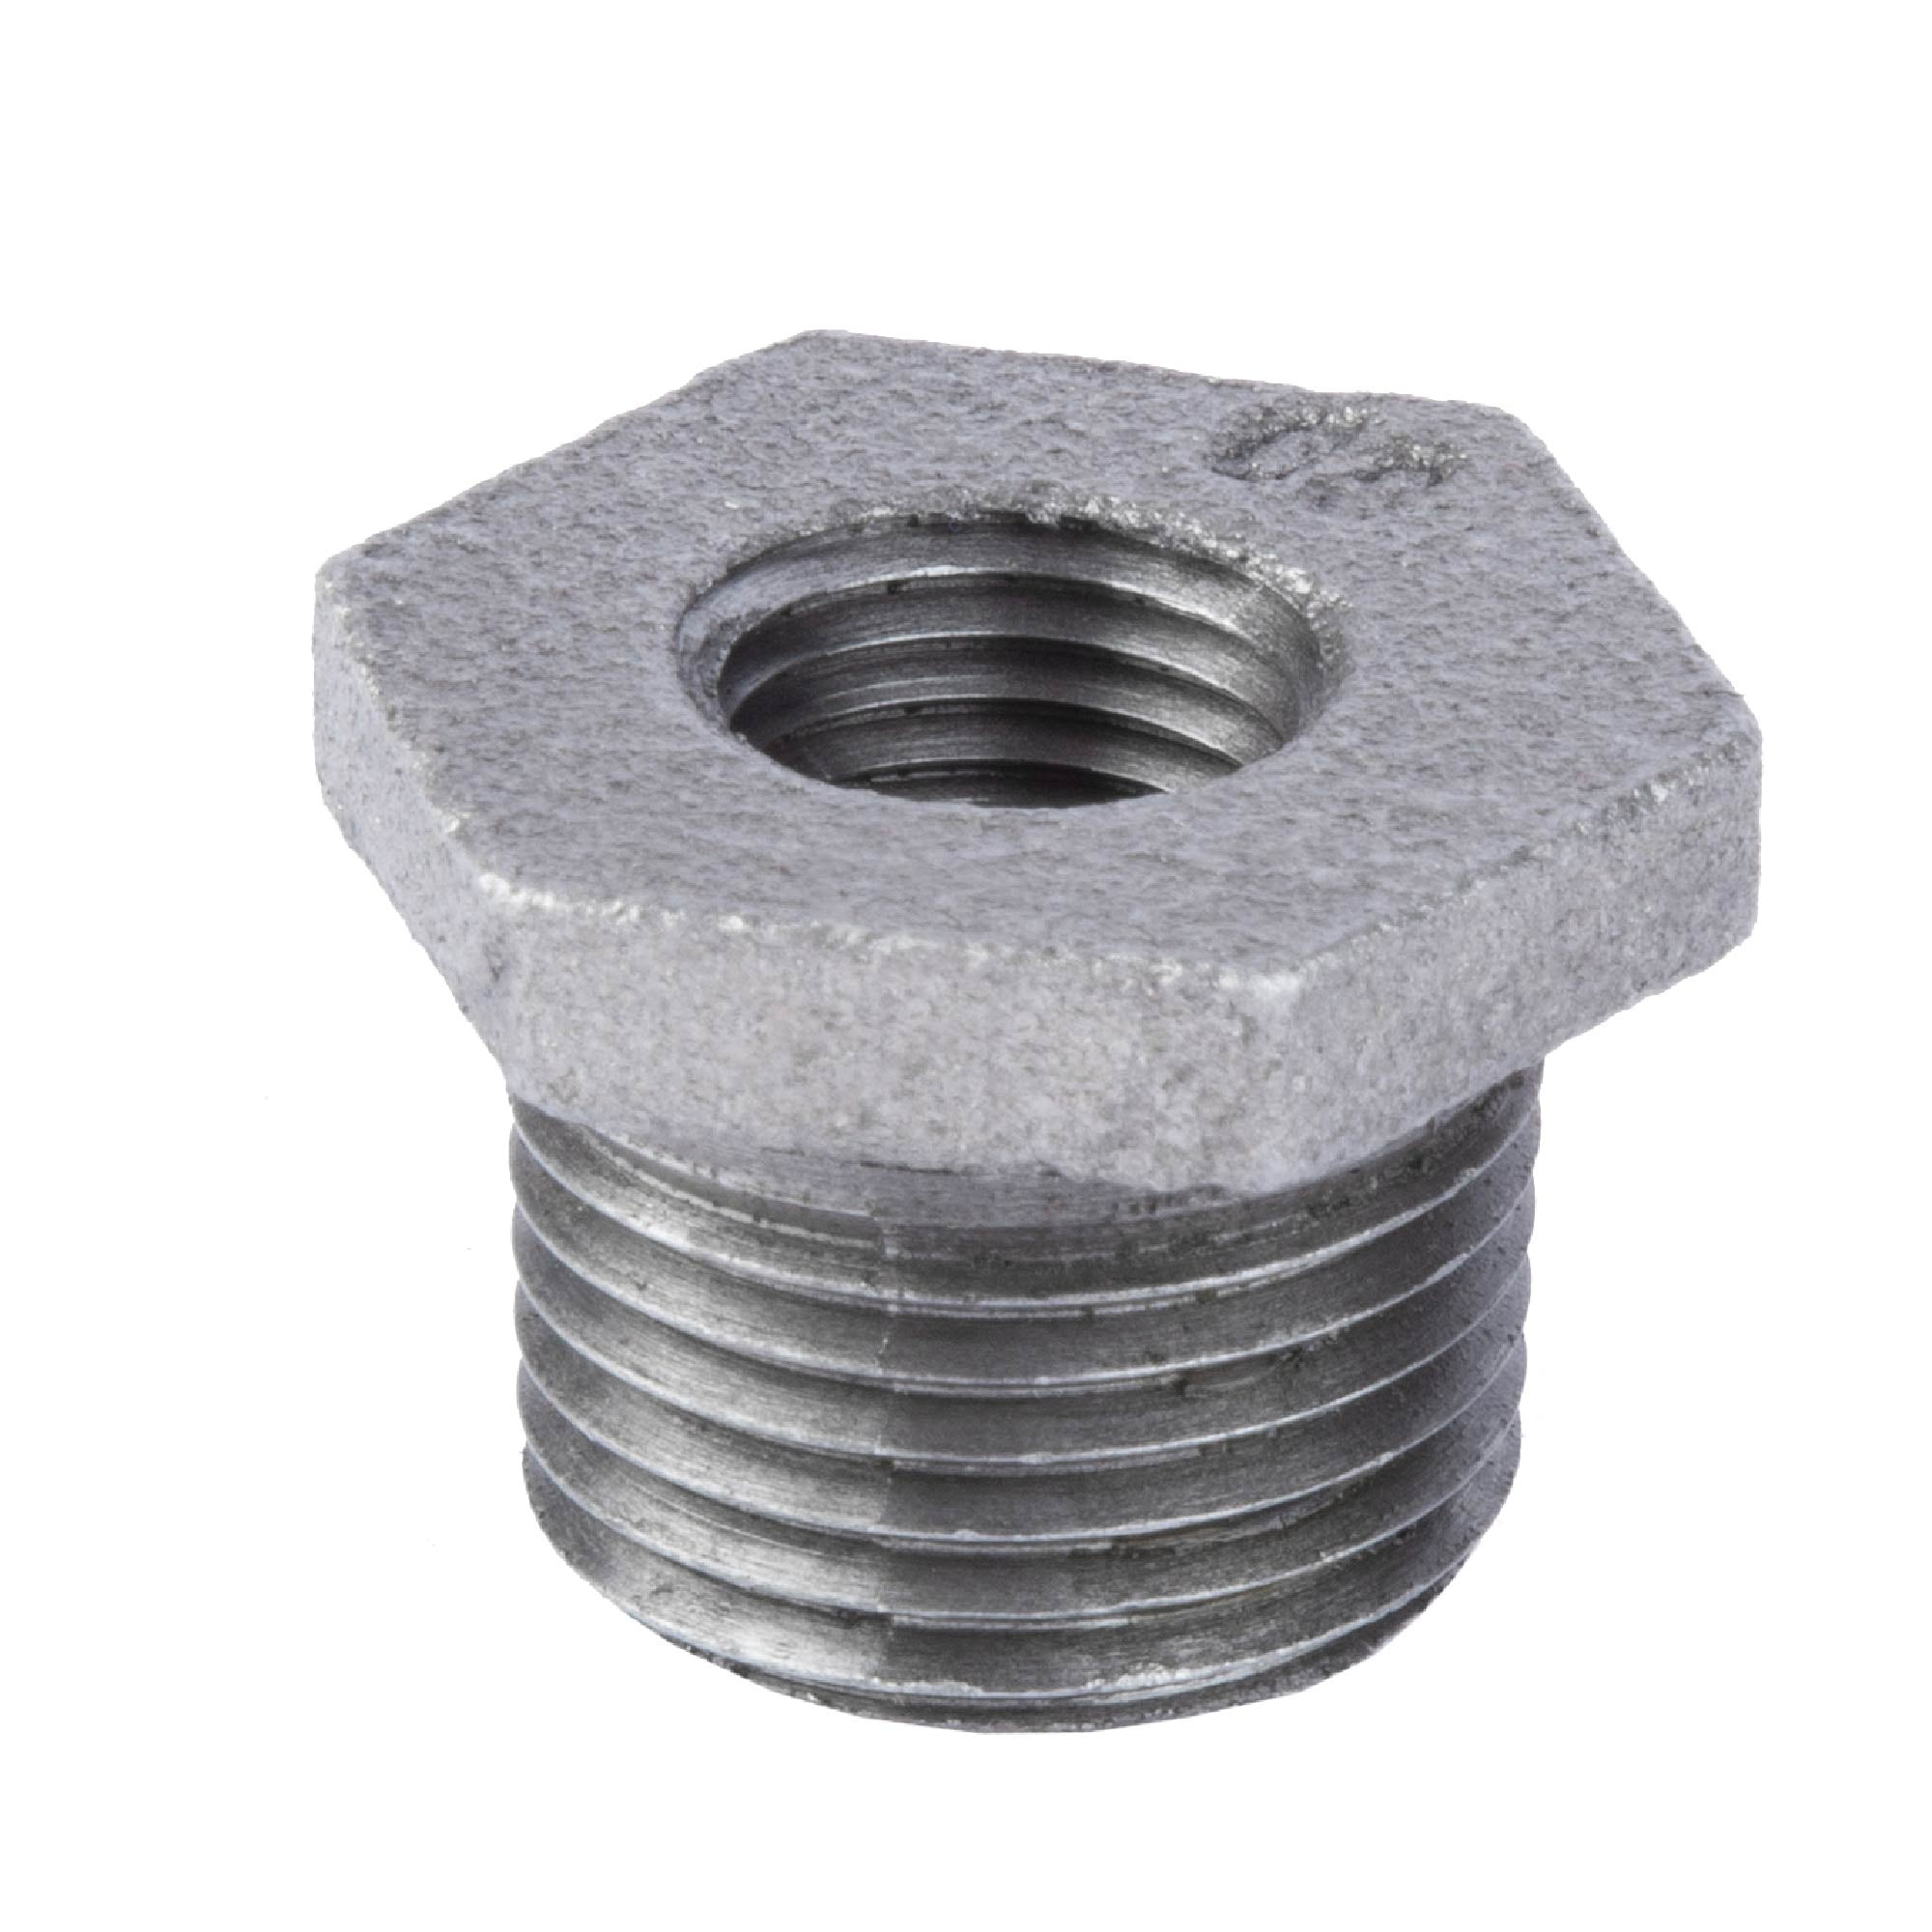 1/2 IN X 1/4 IN BUSHING